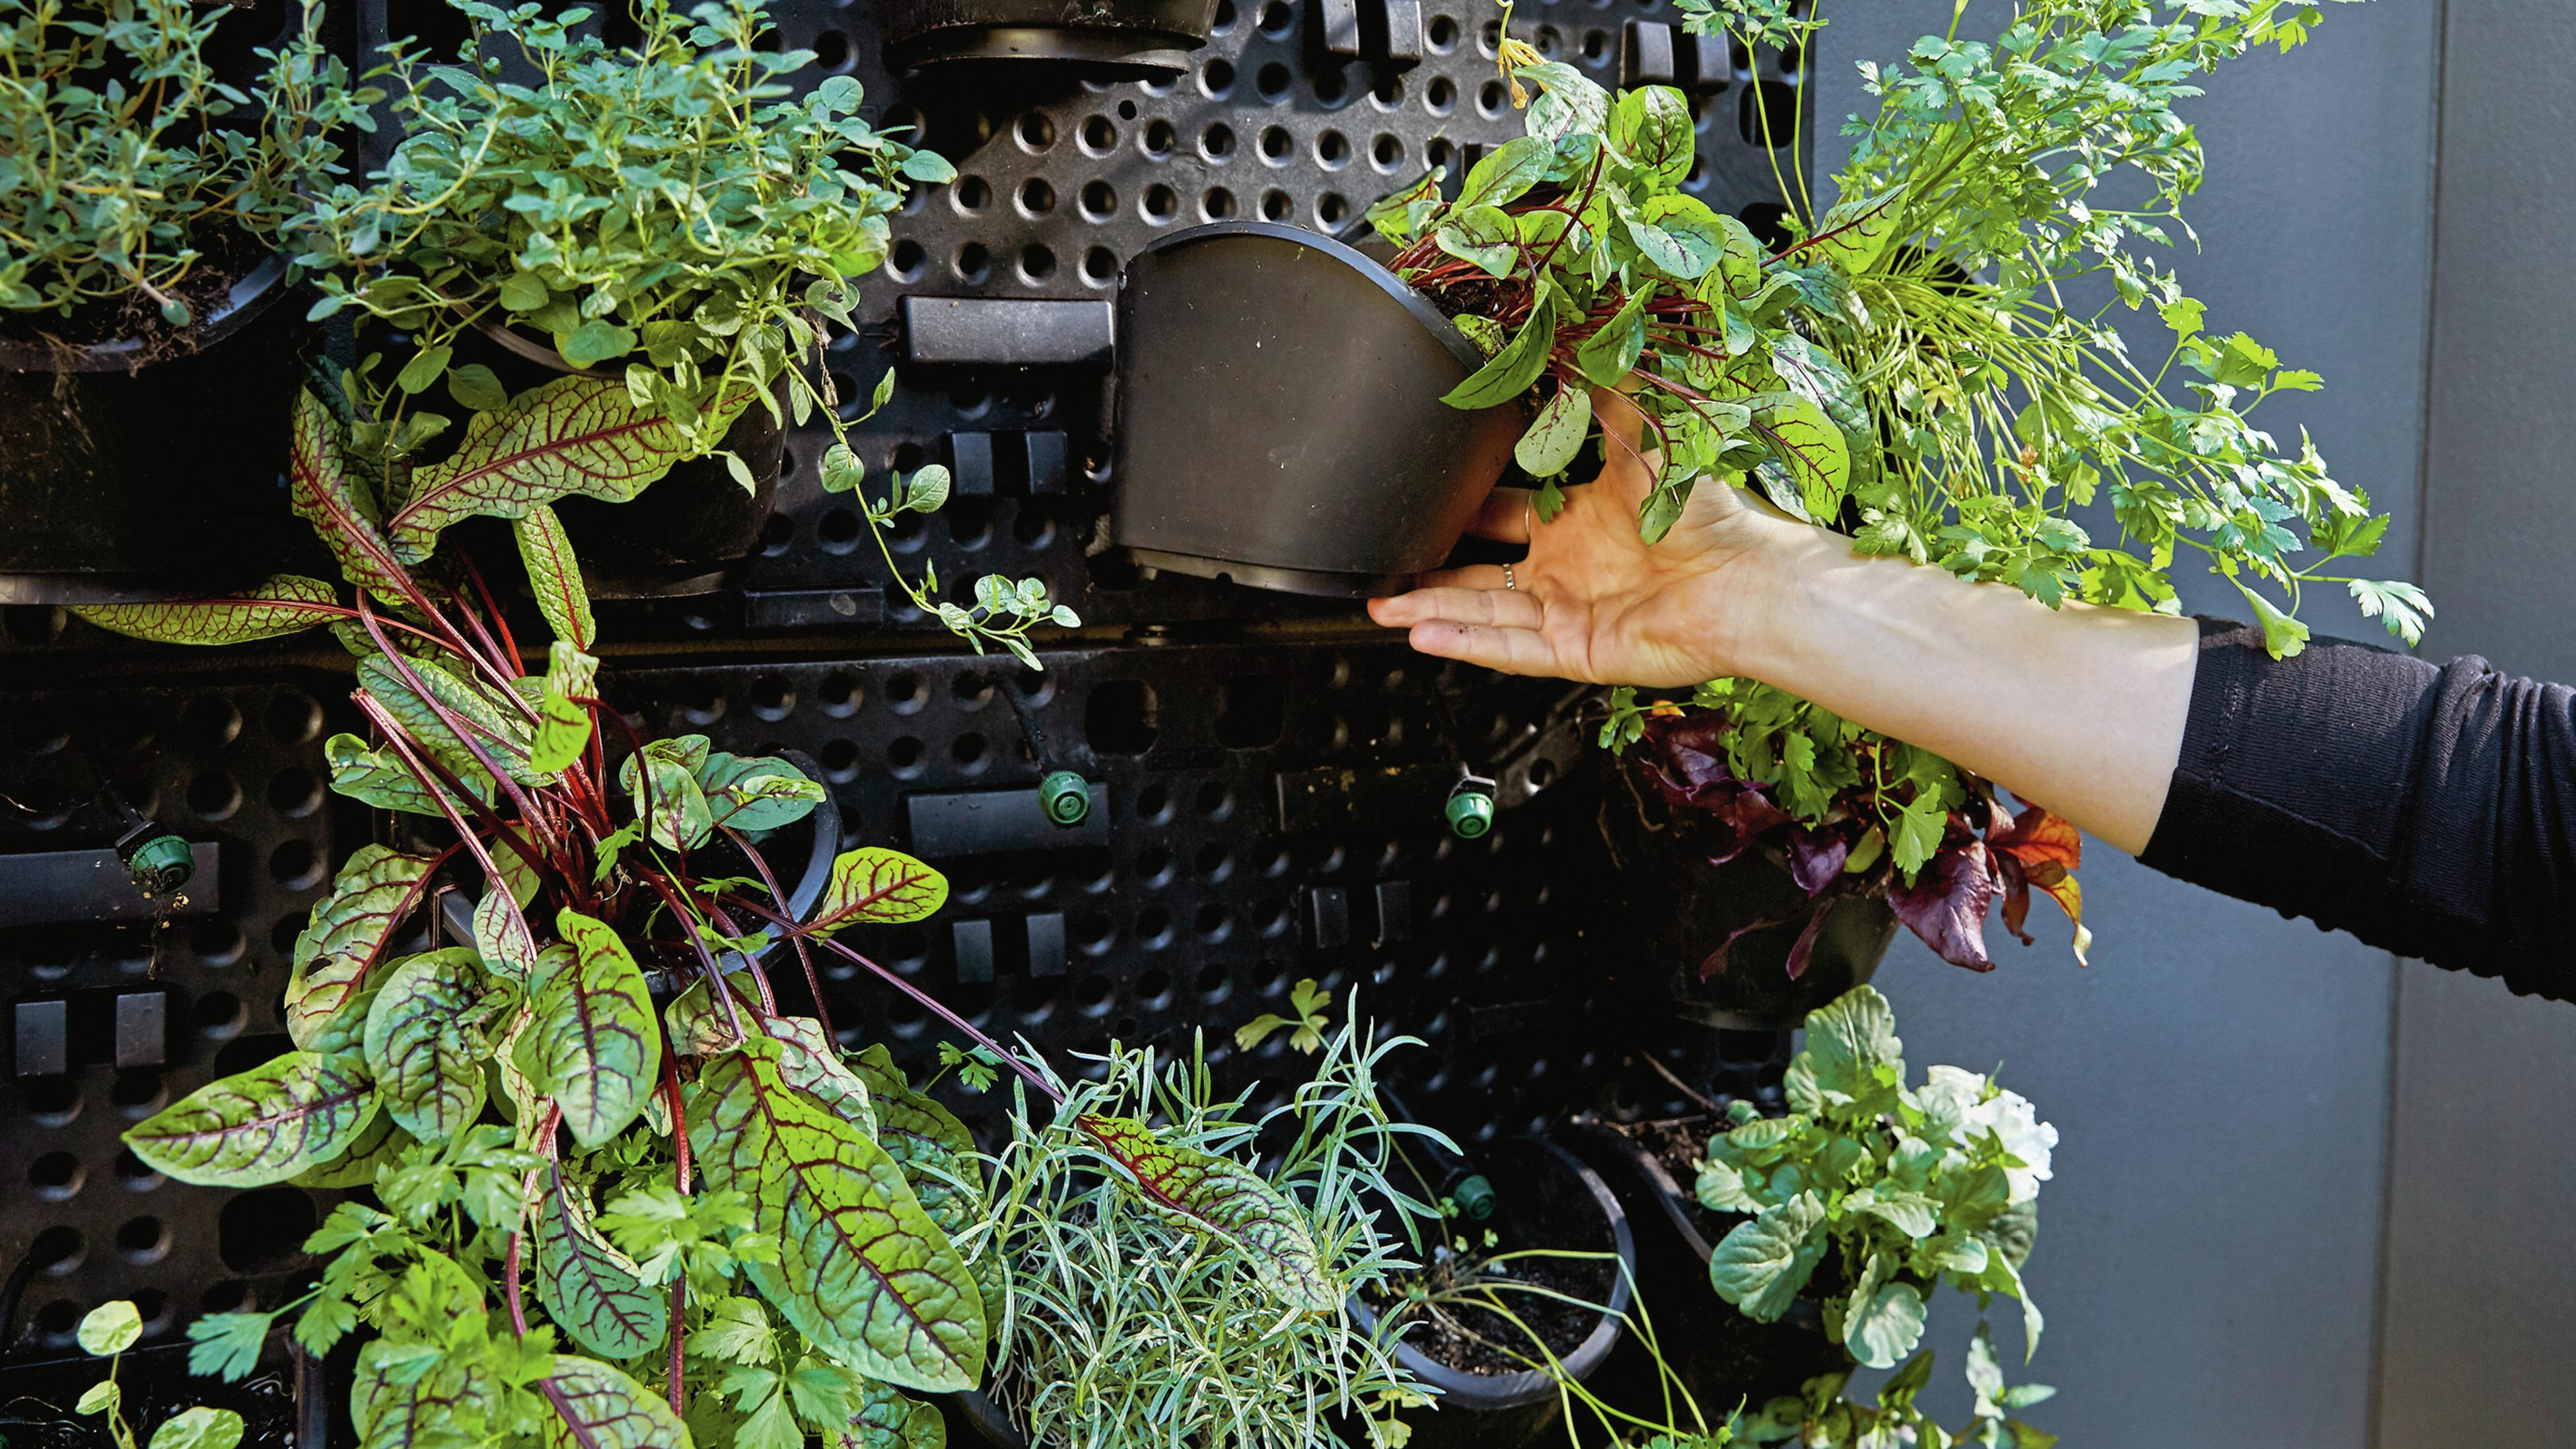 Close up vertical garden with a person putting another pot plant on it.